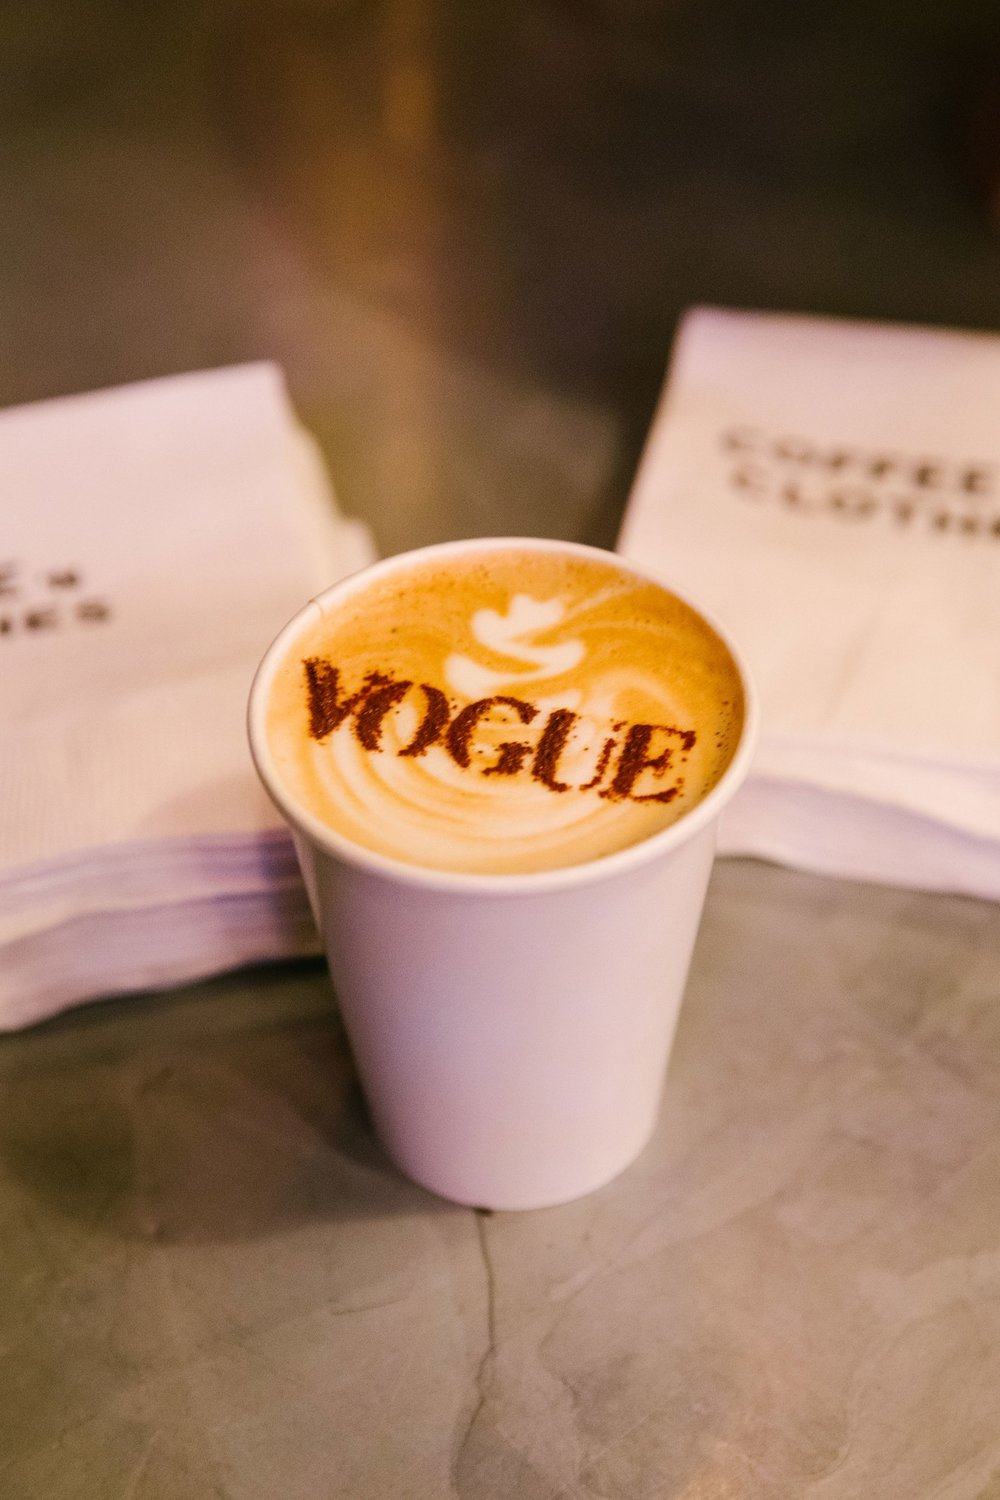 At a Vogue event even the morning coffee (which I don't drink, but do snap pictures of) are chic.